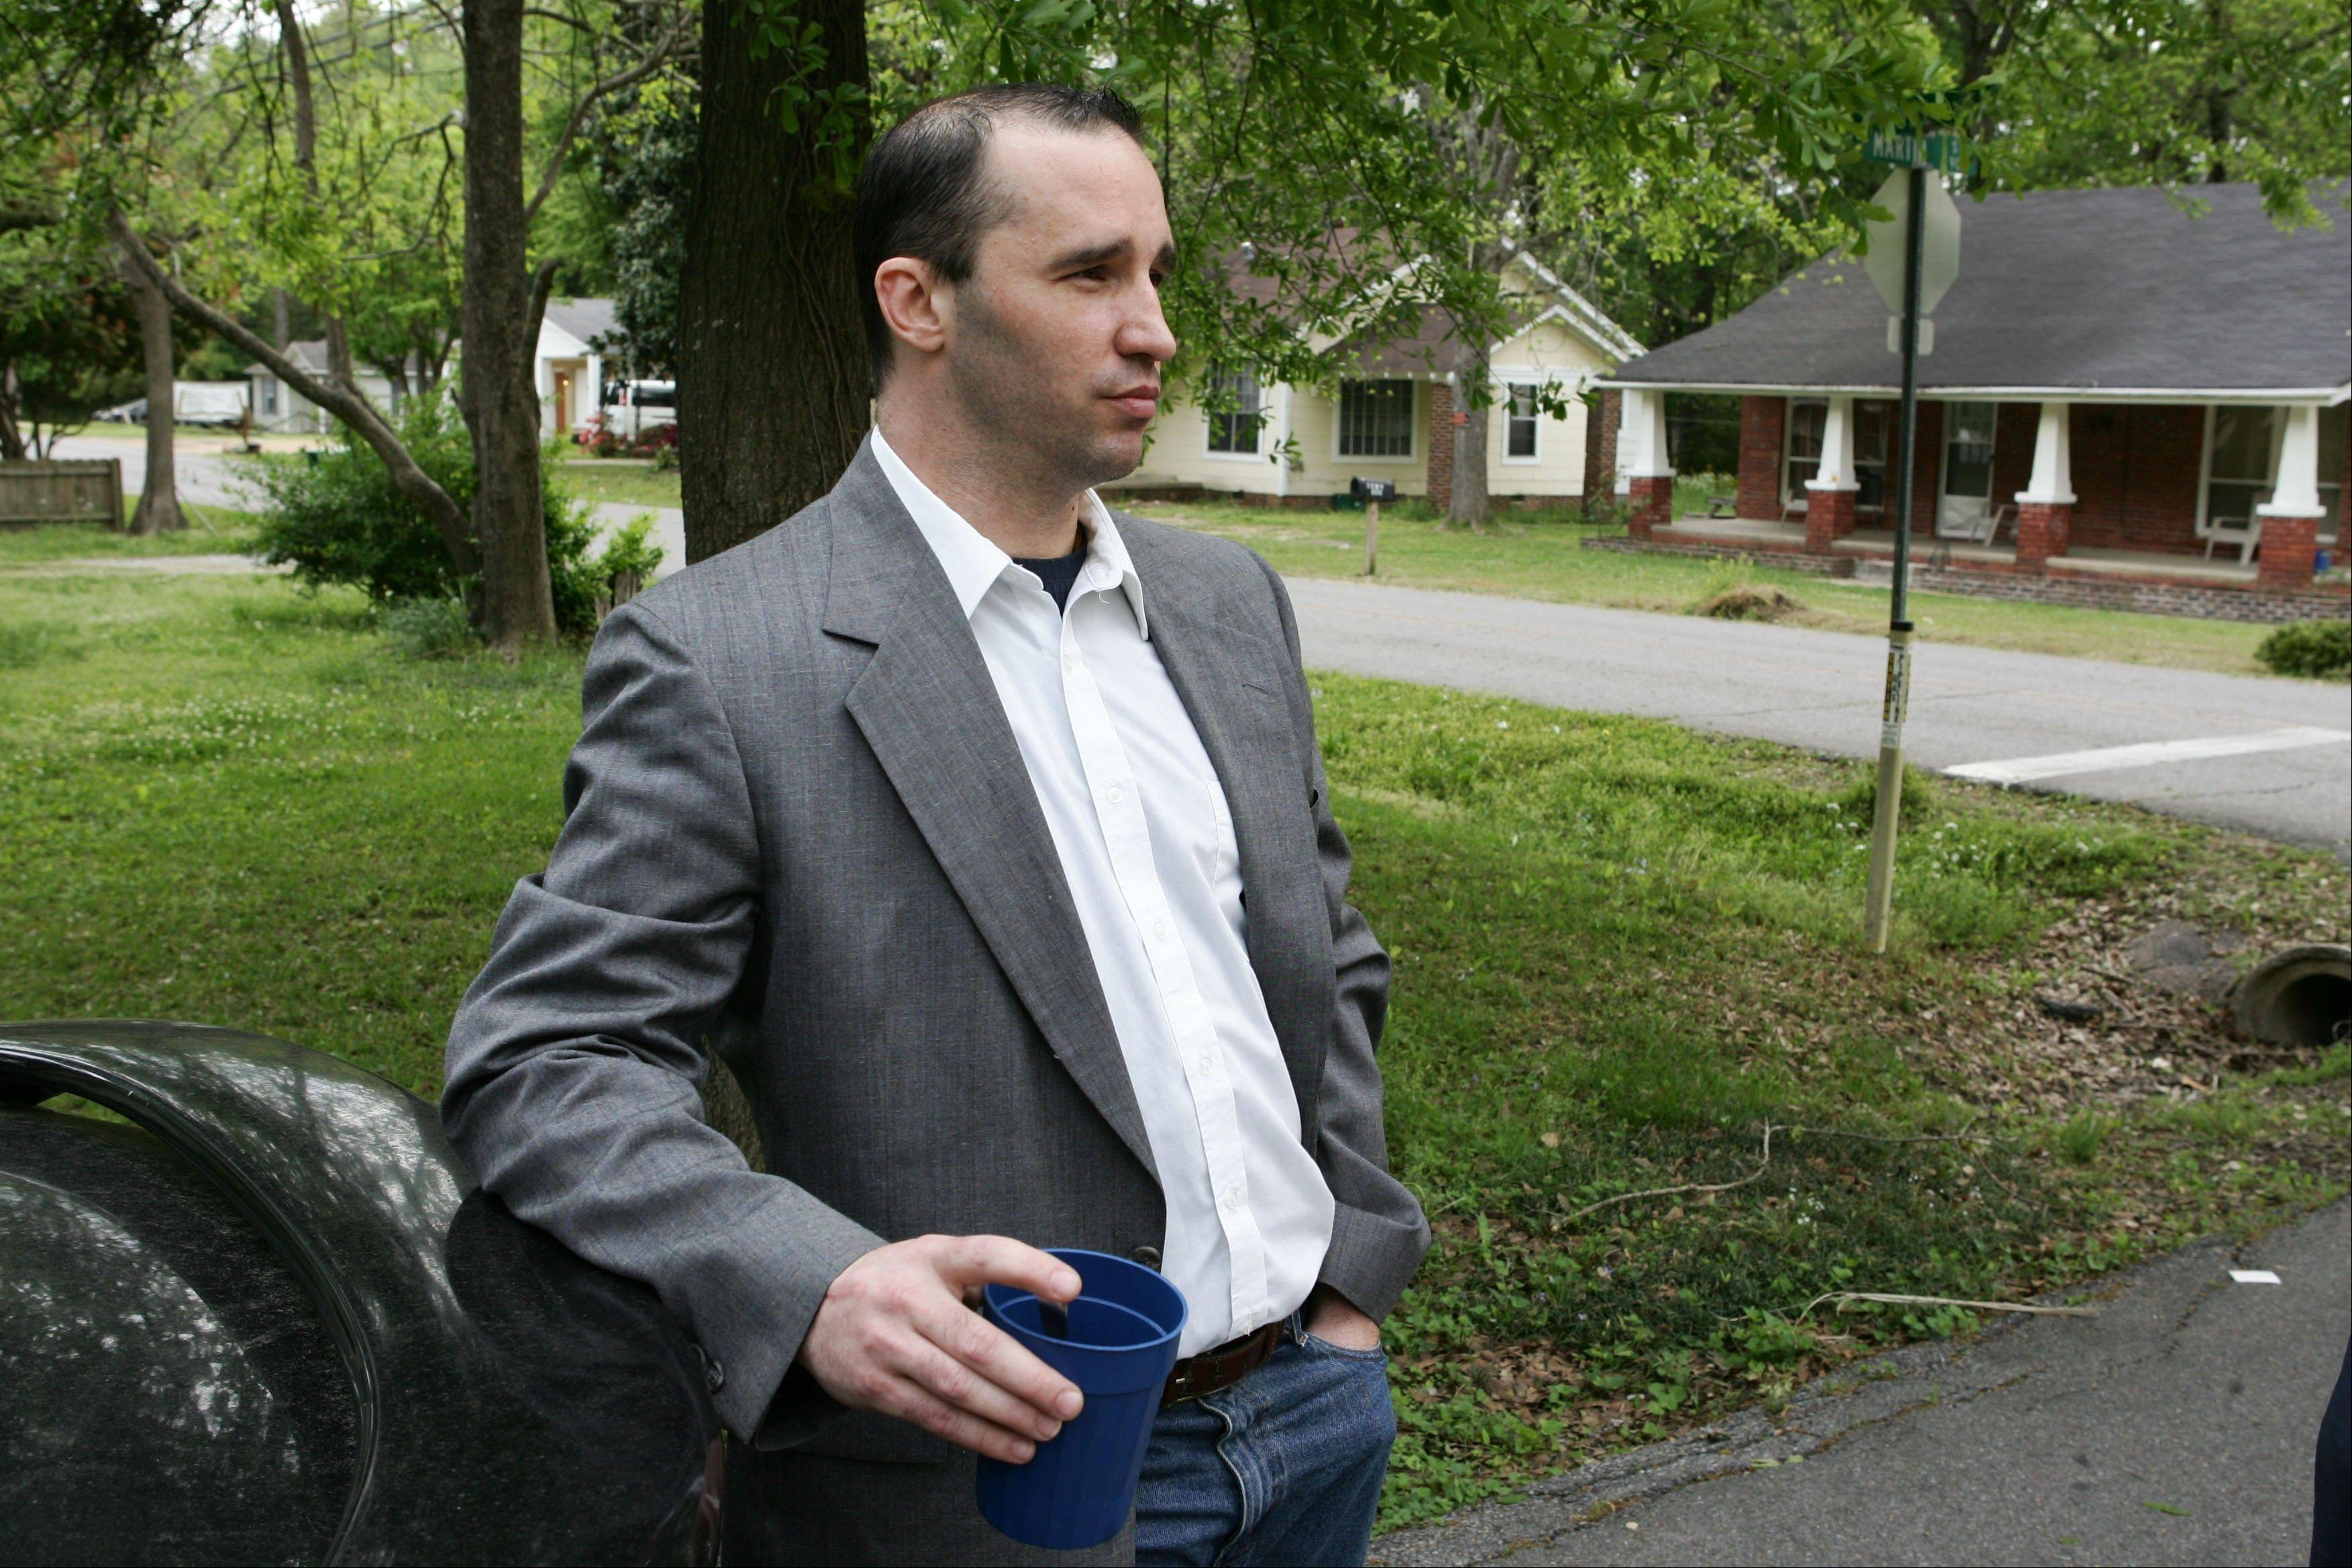 Everett Dutschke stands in the street near his home in Tupelo, Miss., and waits for the FBI to arrive and search his home. Dutschke, charged with making and possessing ricin as part of the investigation into poison-laced letters sent to President Barack Obama and others, is expected to appear in court Monday.